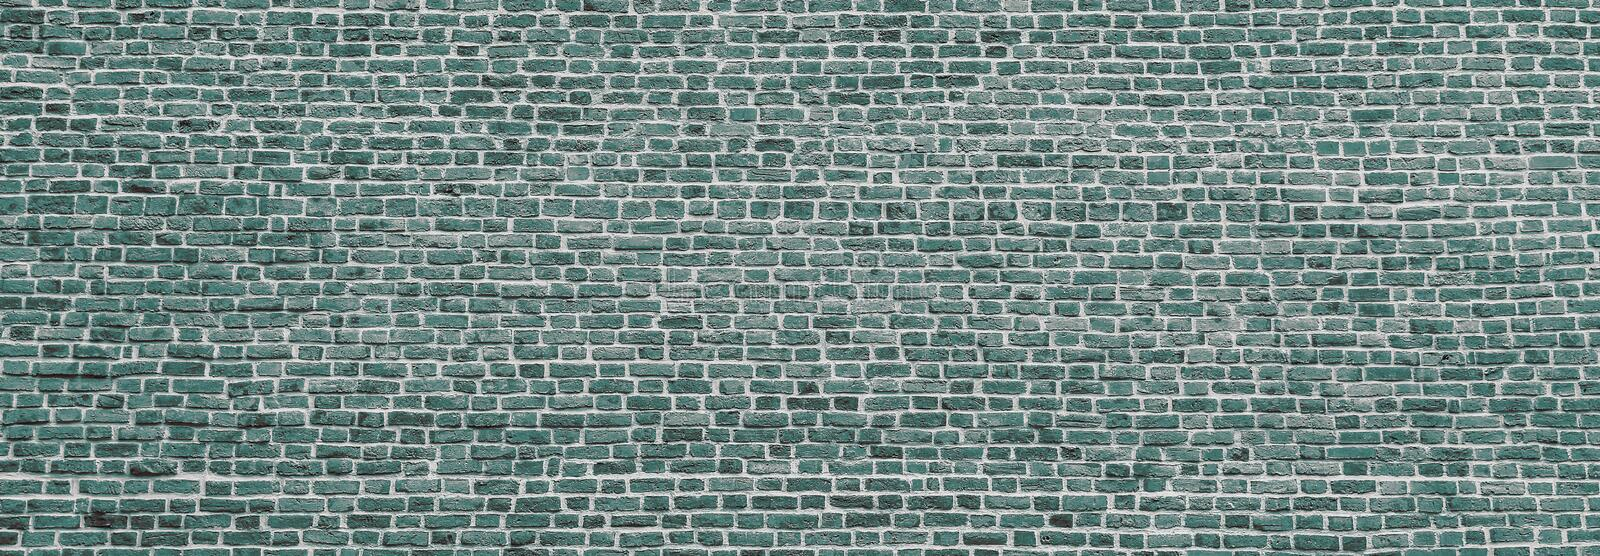 Brick wall, wide panorama of mint color masonry. Wall with small Bricks. Modern wallpaper design for web or graphic art projects. Abstract template or mock up stock images